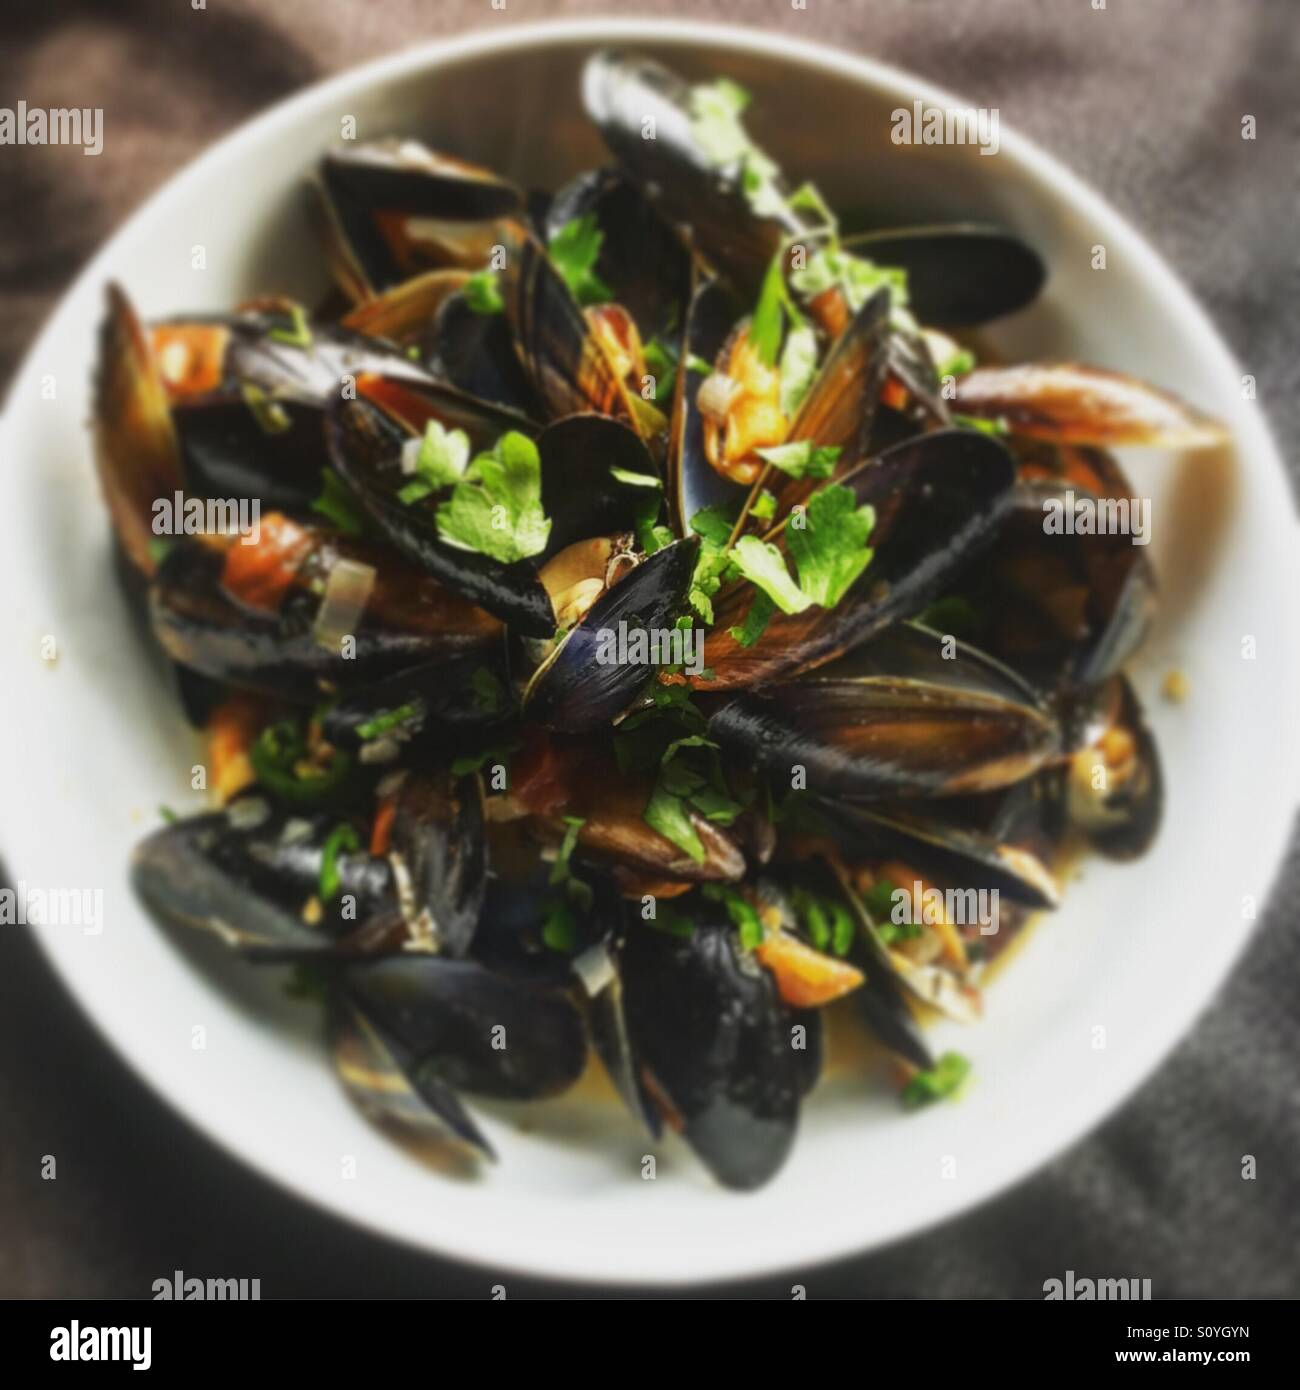 Mussels healthy seafood - Stock Image